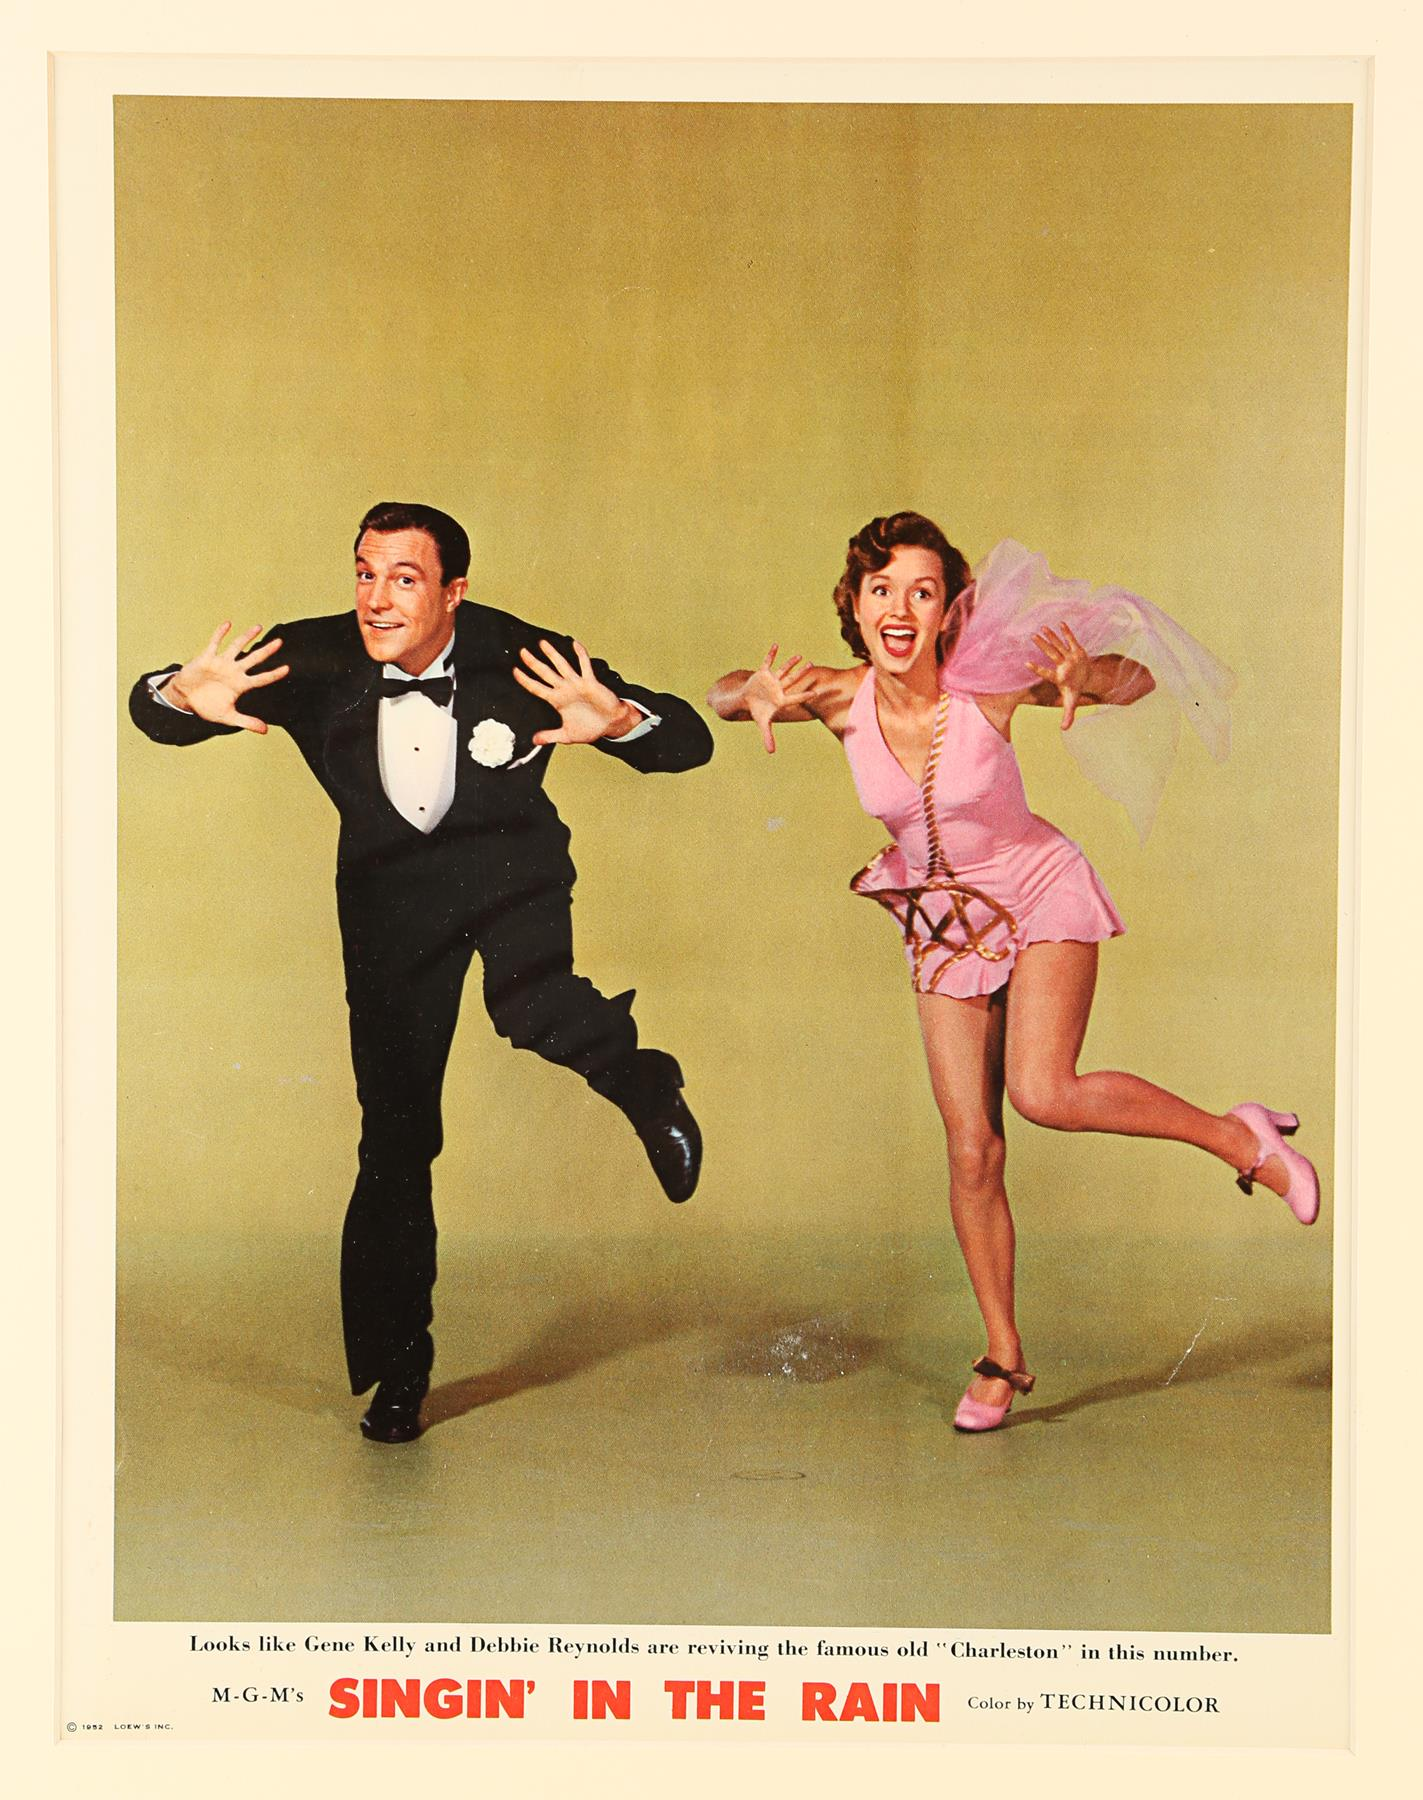 SINGIN' IN THE RAIN (1952) - Deluxe Lobby Card, 1952 - Image 2 of 2